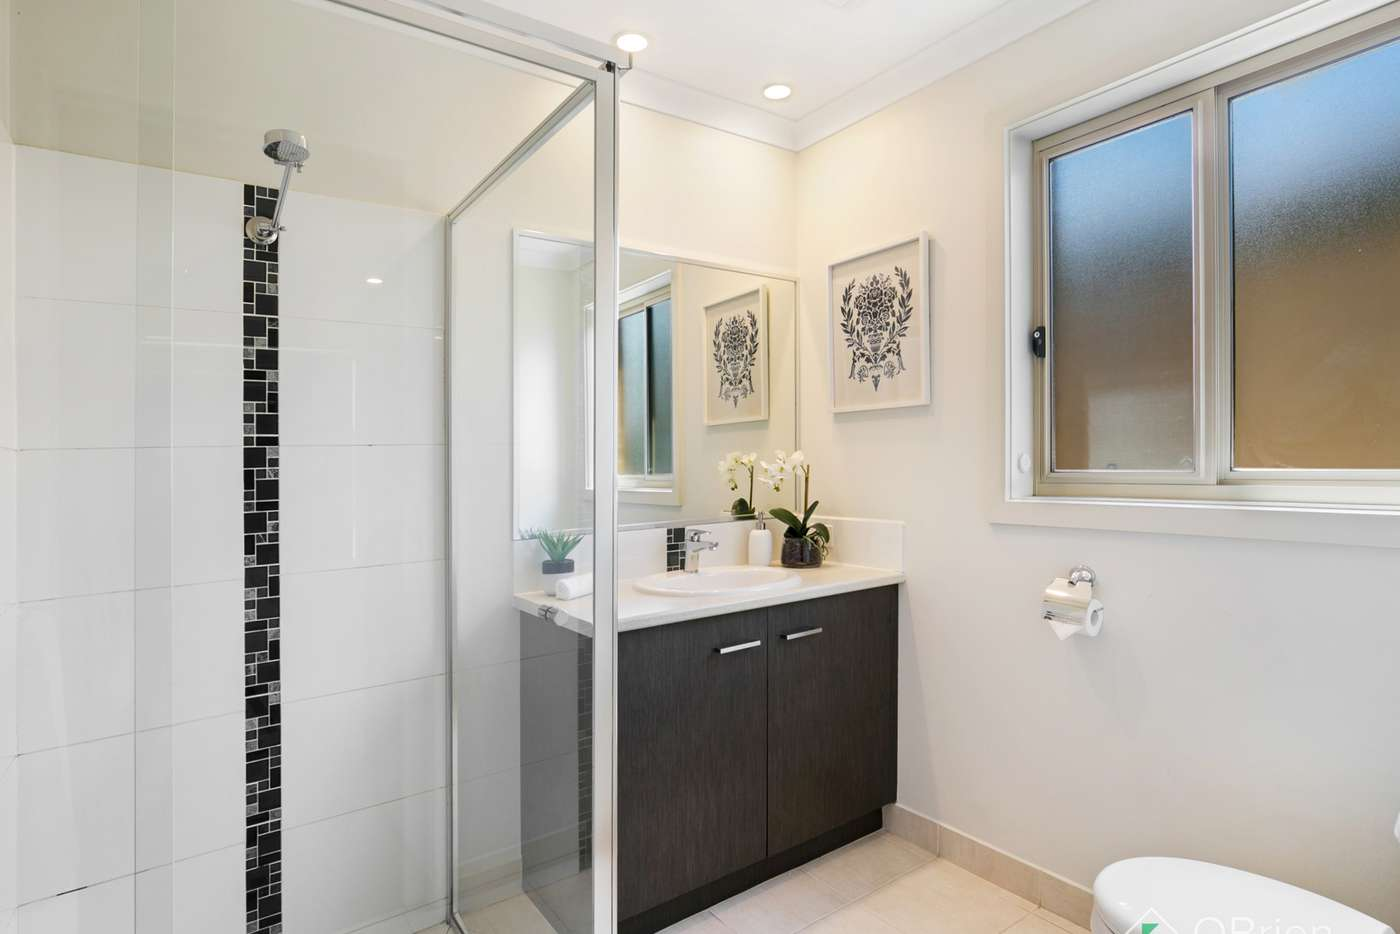 Seventh view of Homely house listing, 4 Gonis Crescent, Carrum Downs VIC 3201